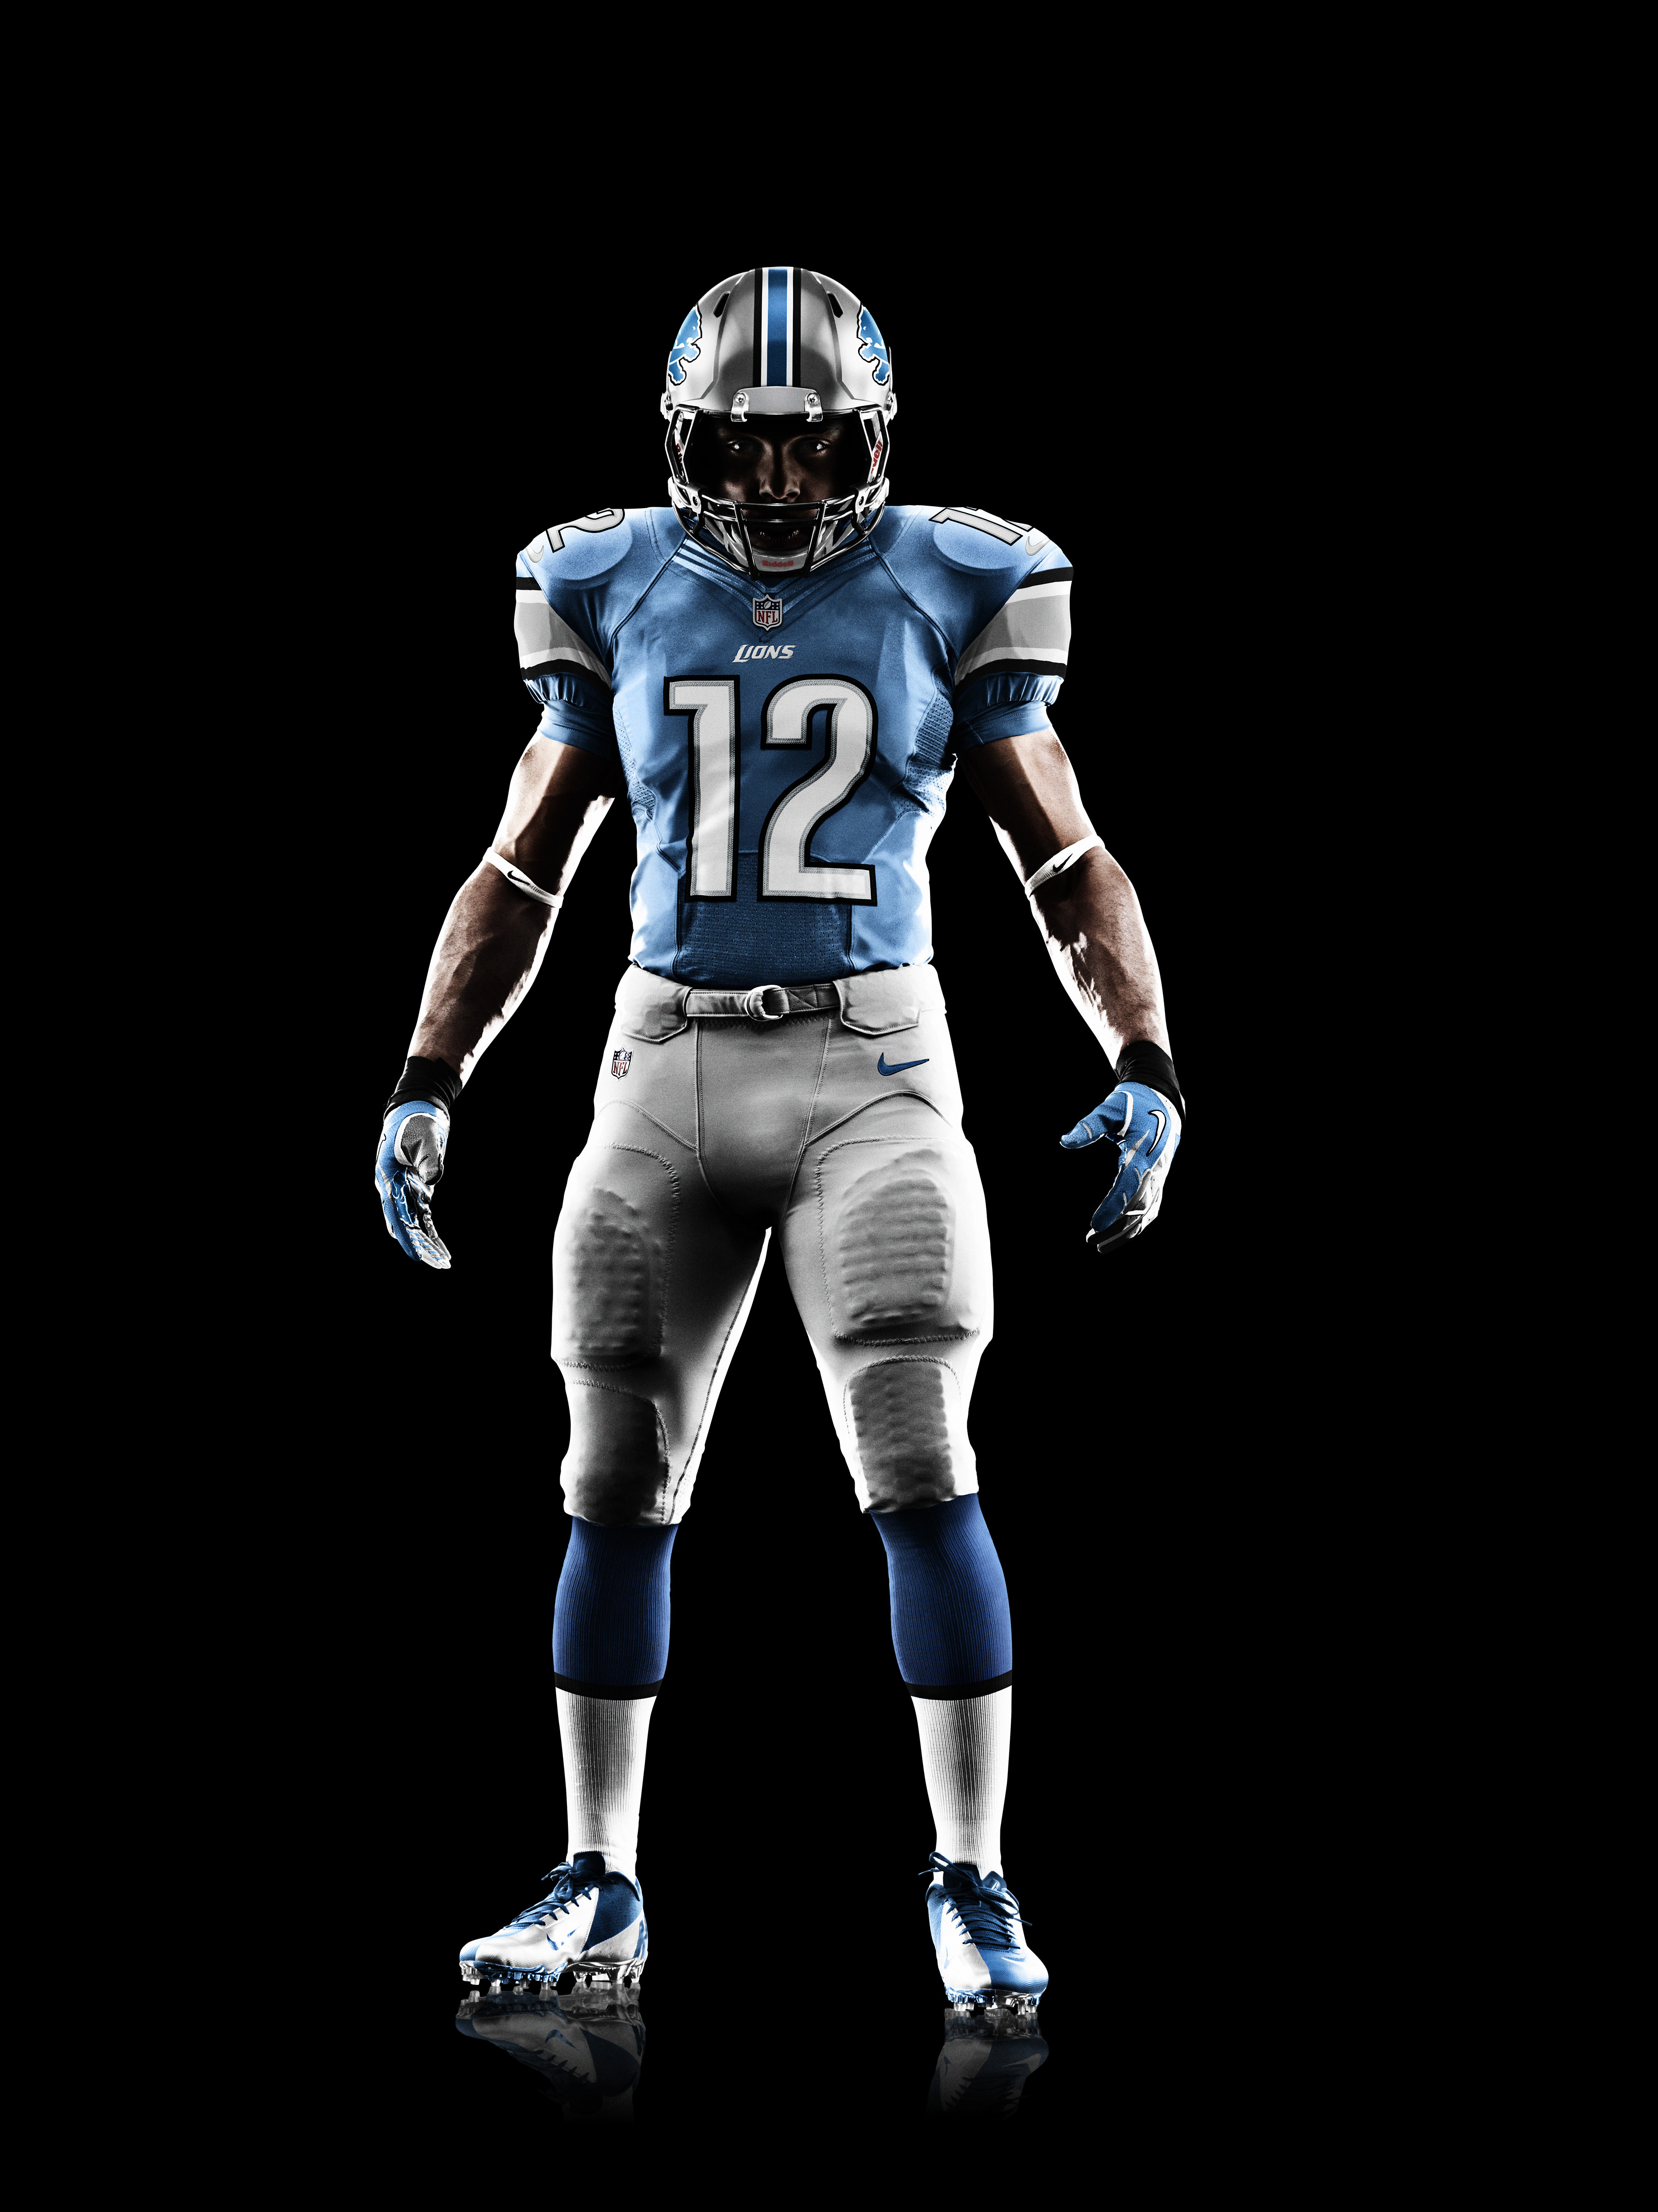 Nike News - Detroit Lions 2012 Nike Football Uniform